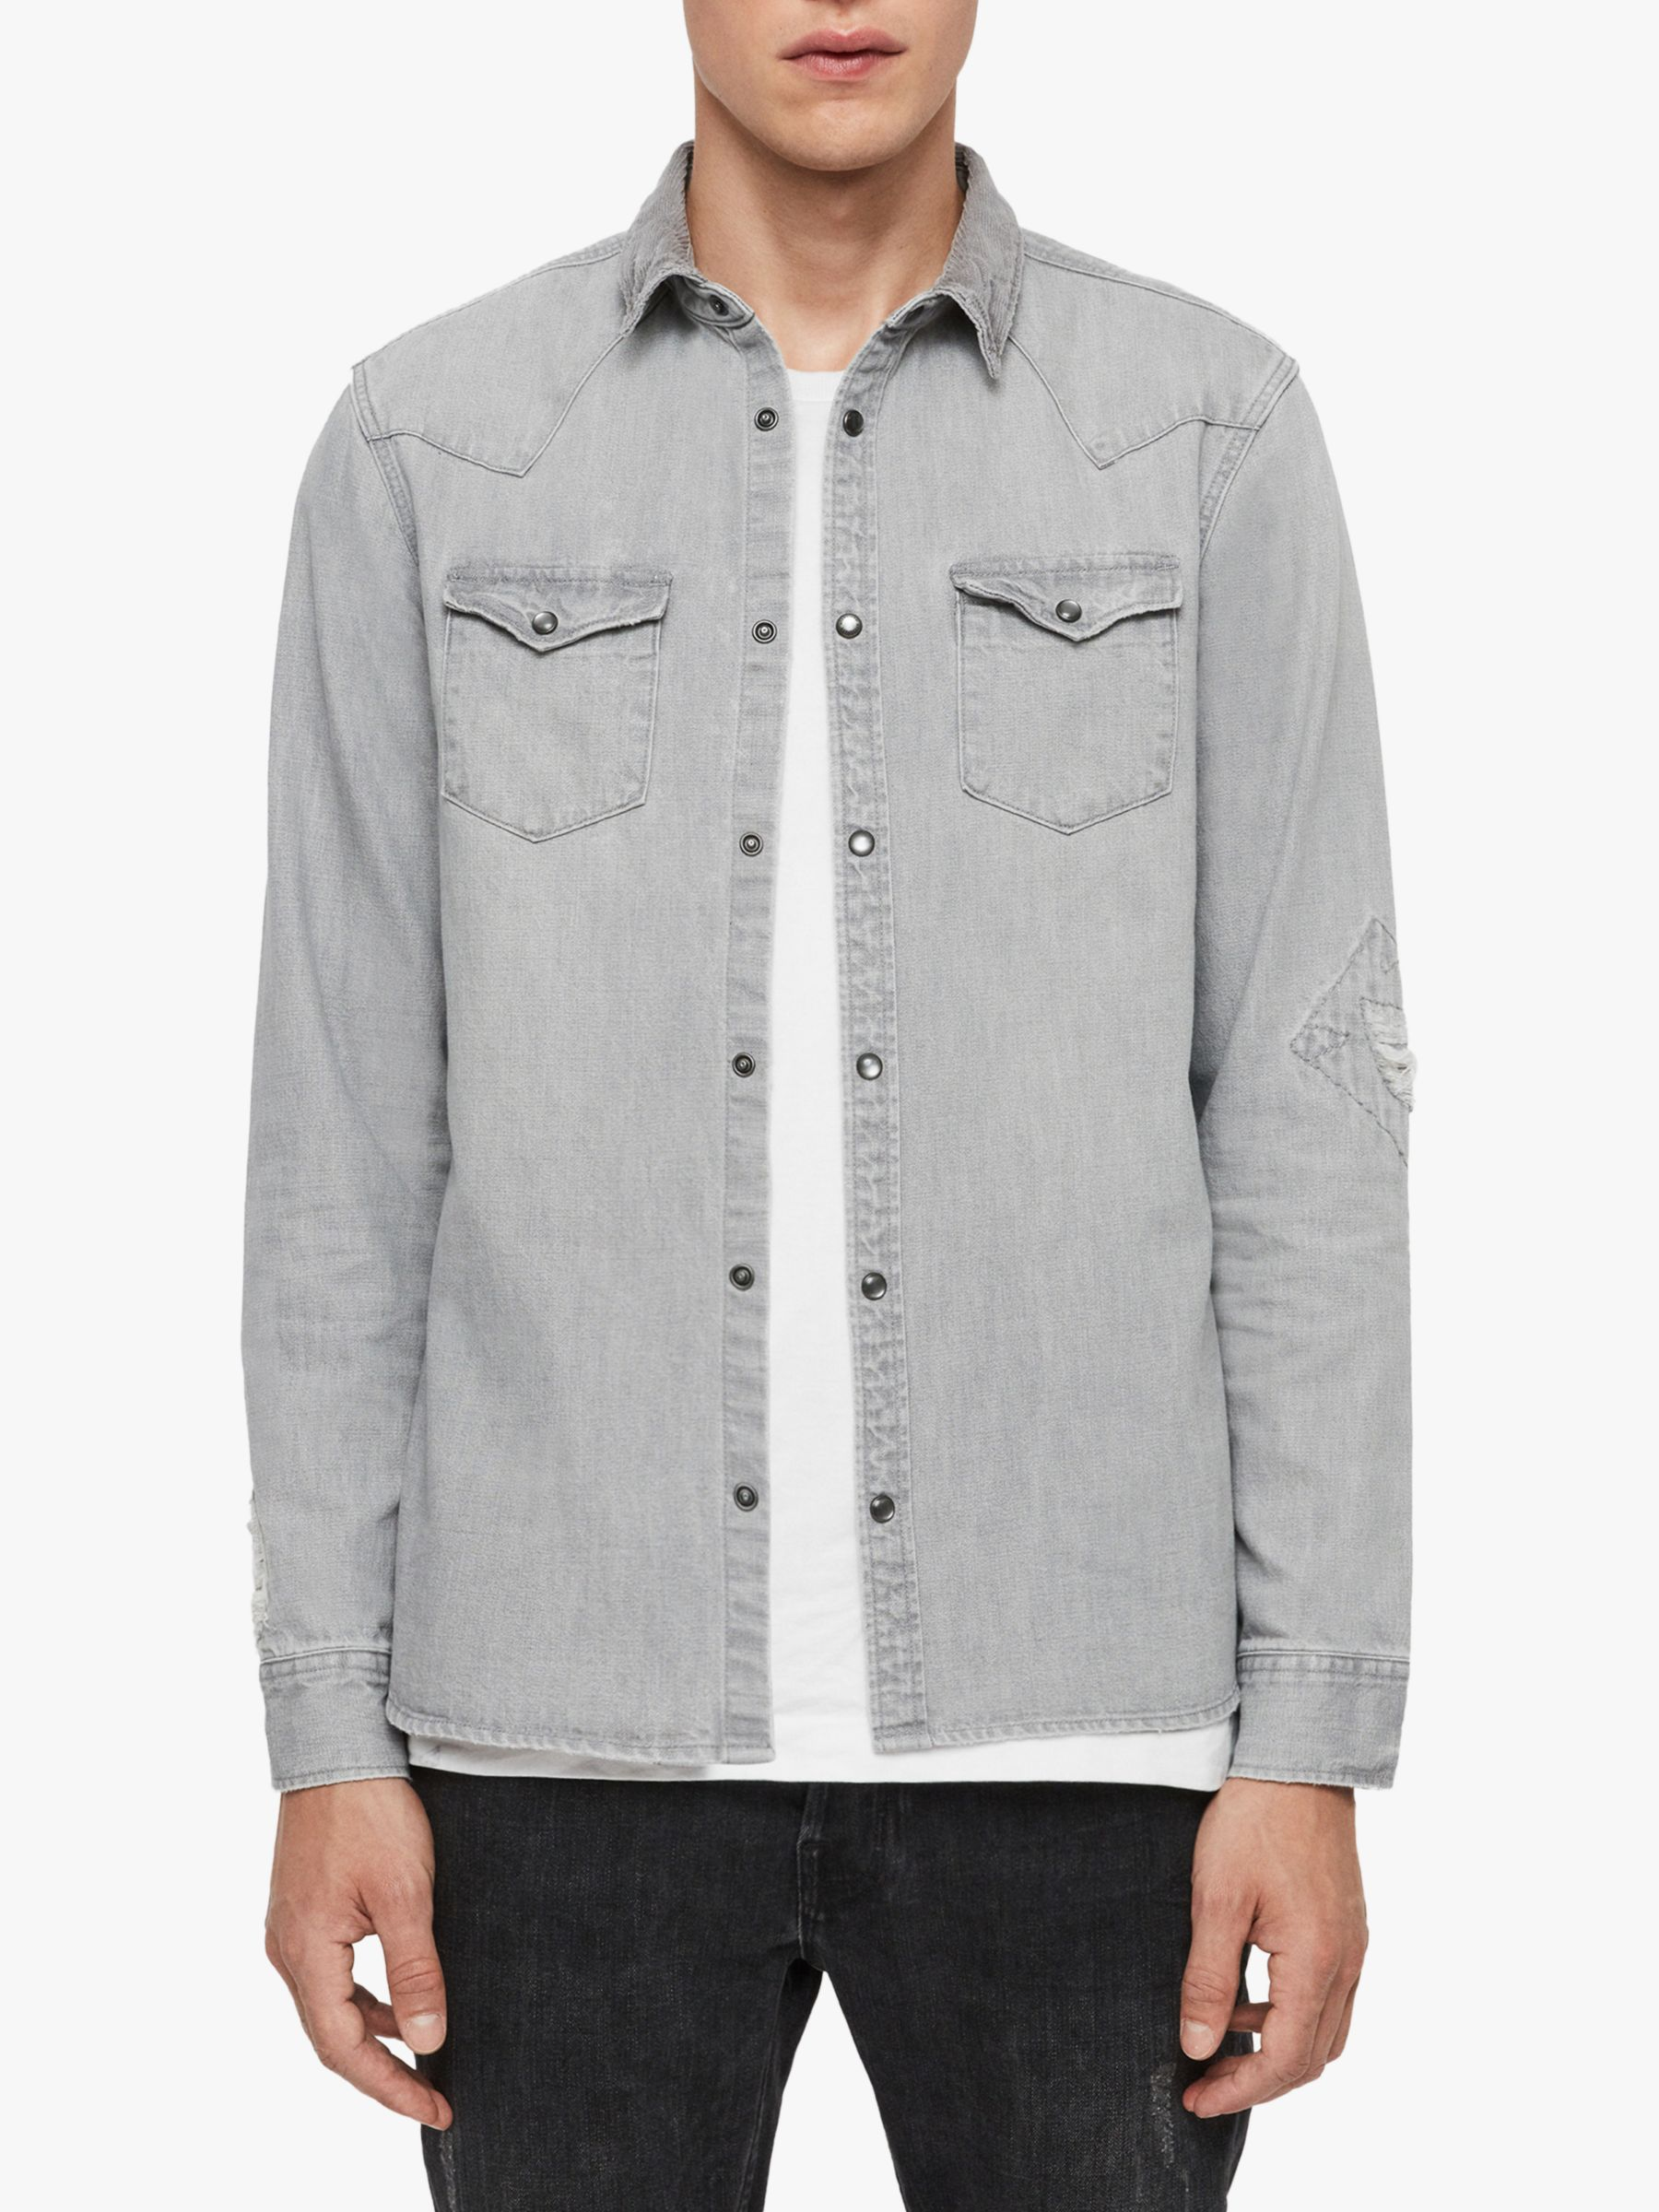 AllSaints AllSaints Giro Denim Shirt, Grey